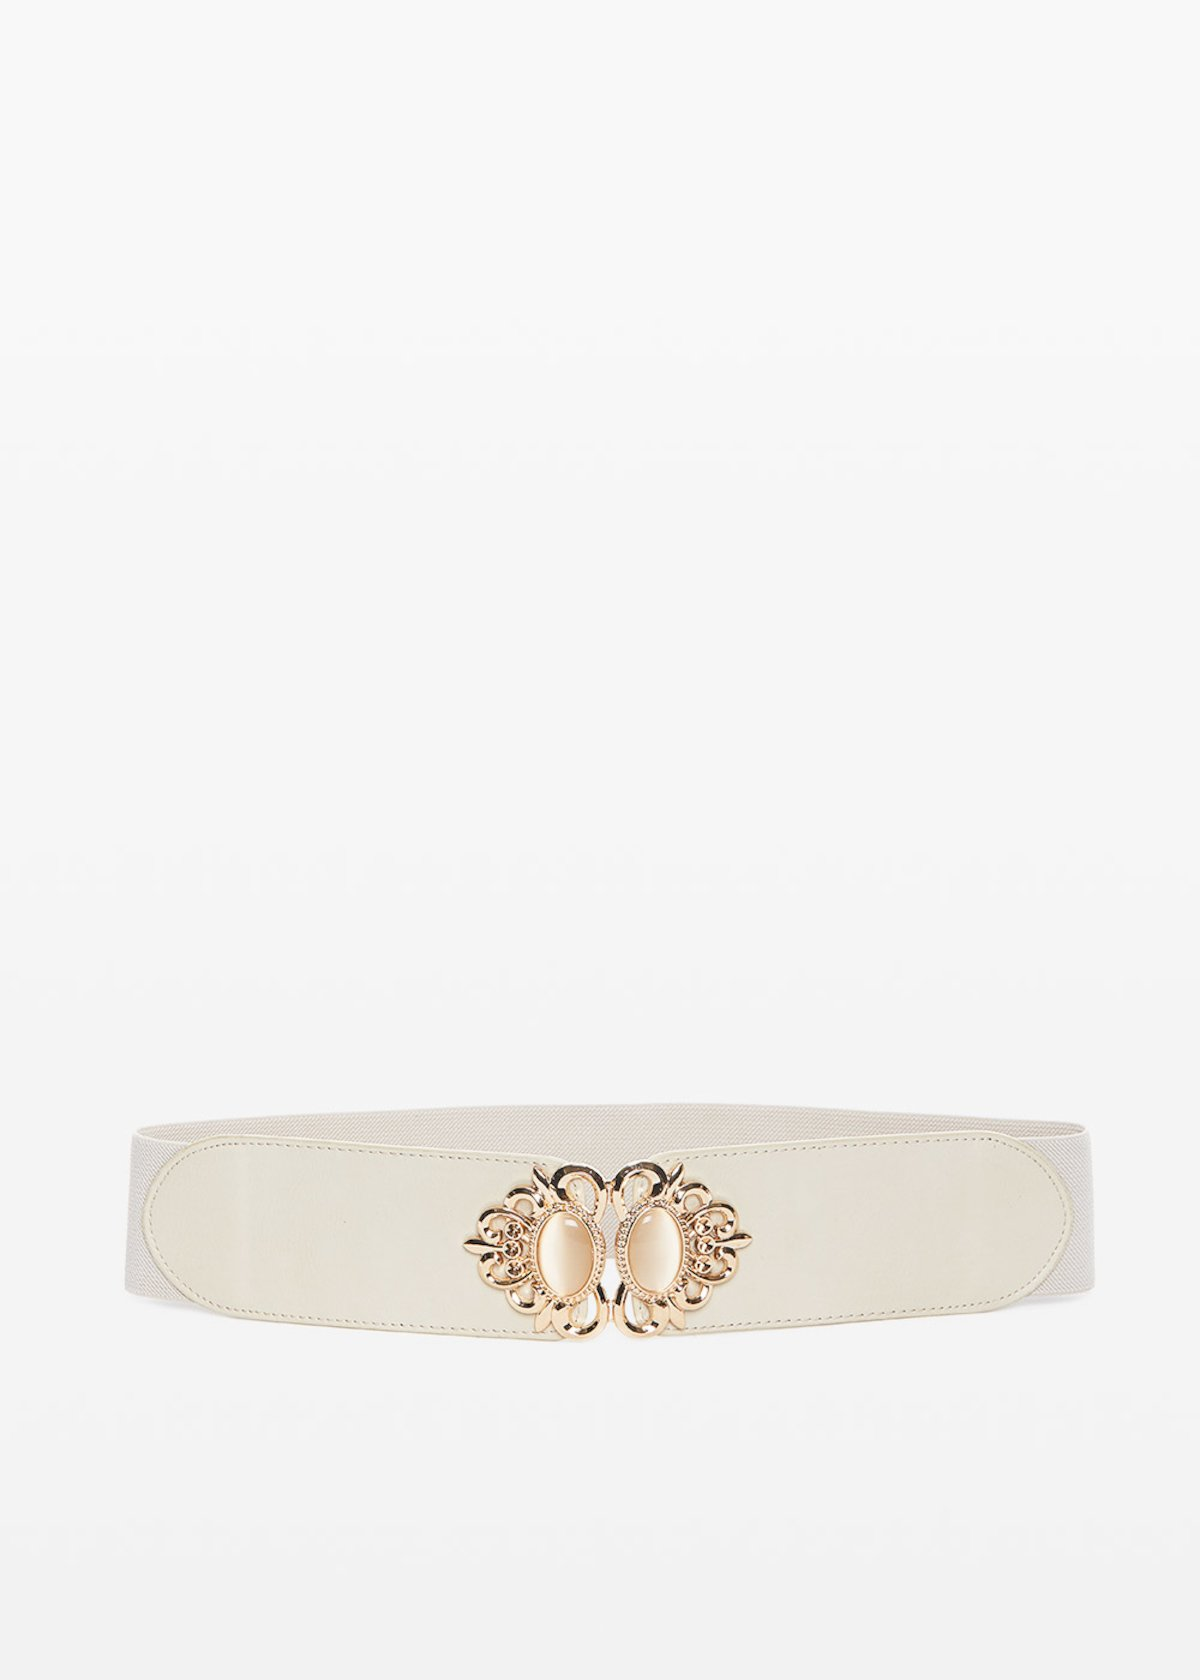 Charlott faux leather belt with light gold closure - Light Beige - Woman